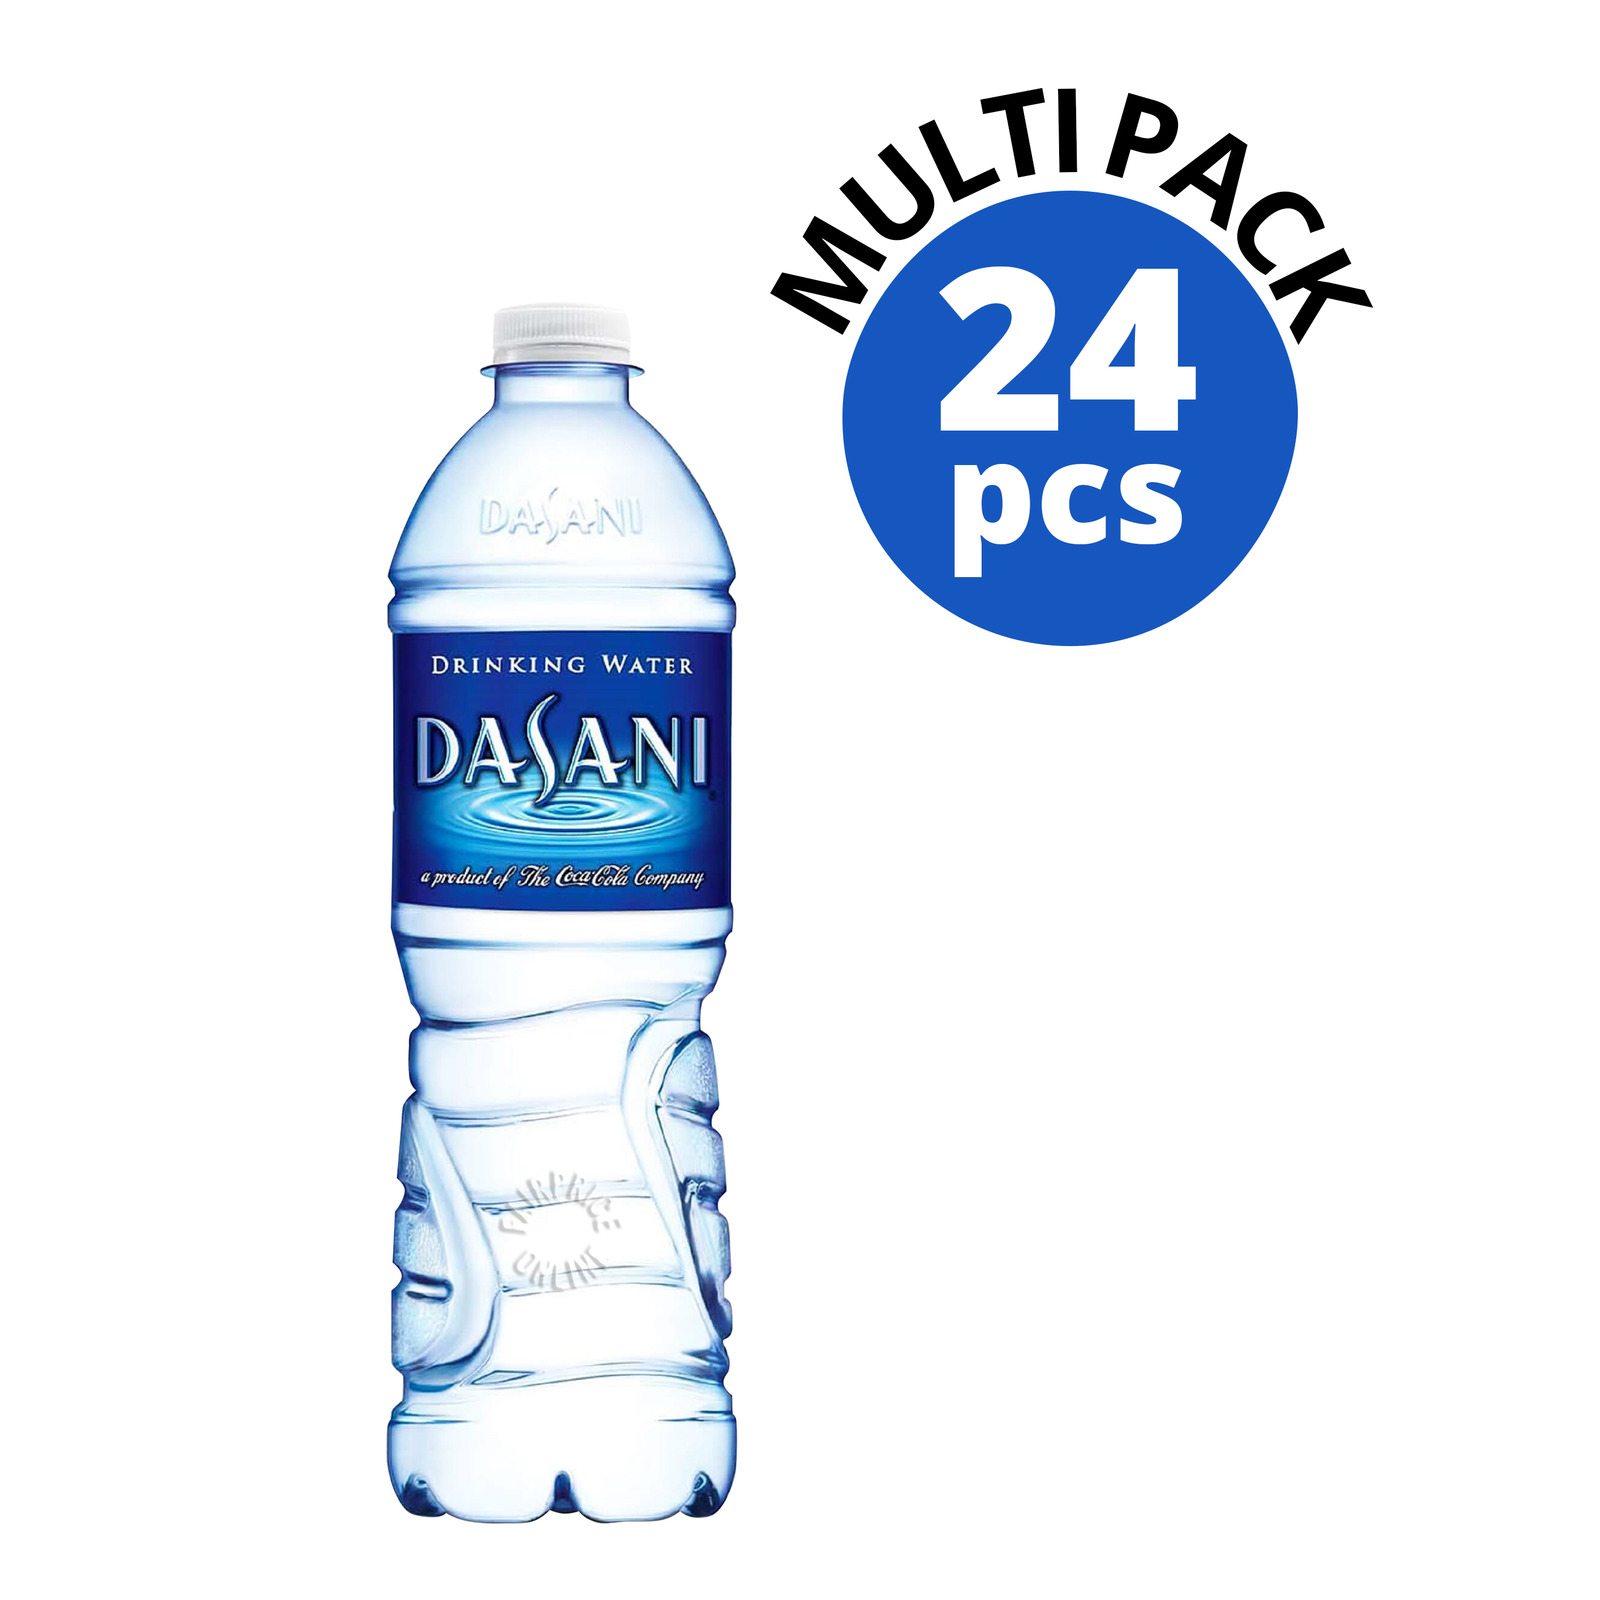 Dasani Drinking Water (12 x 1.5L) - Case